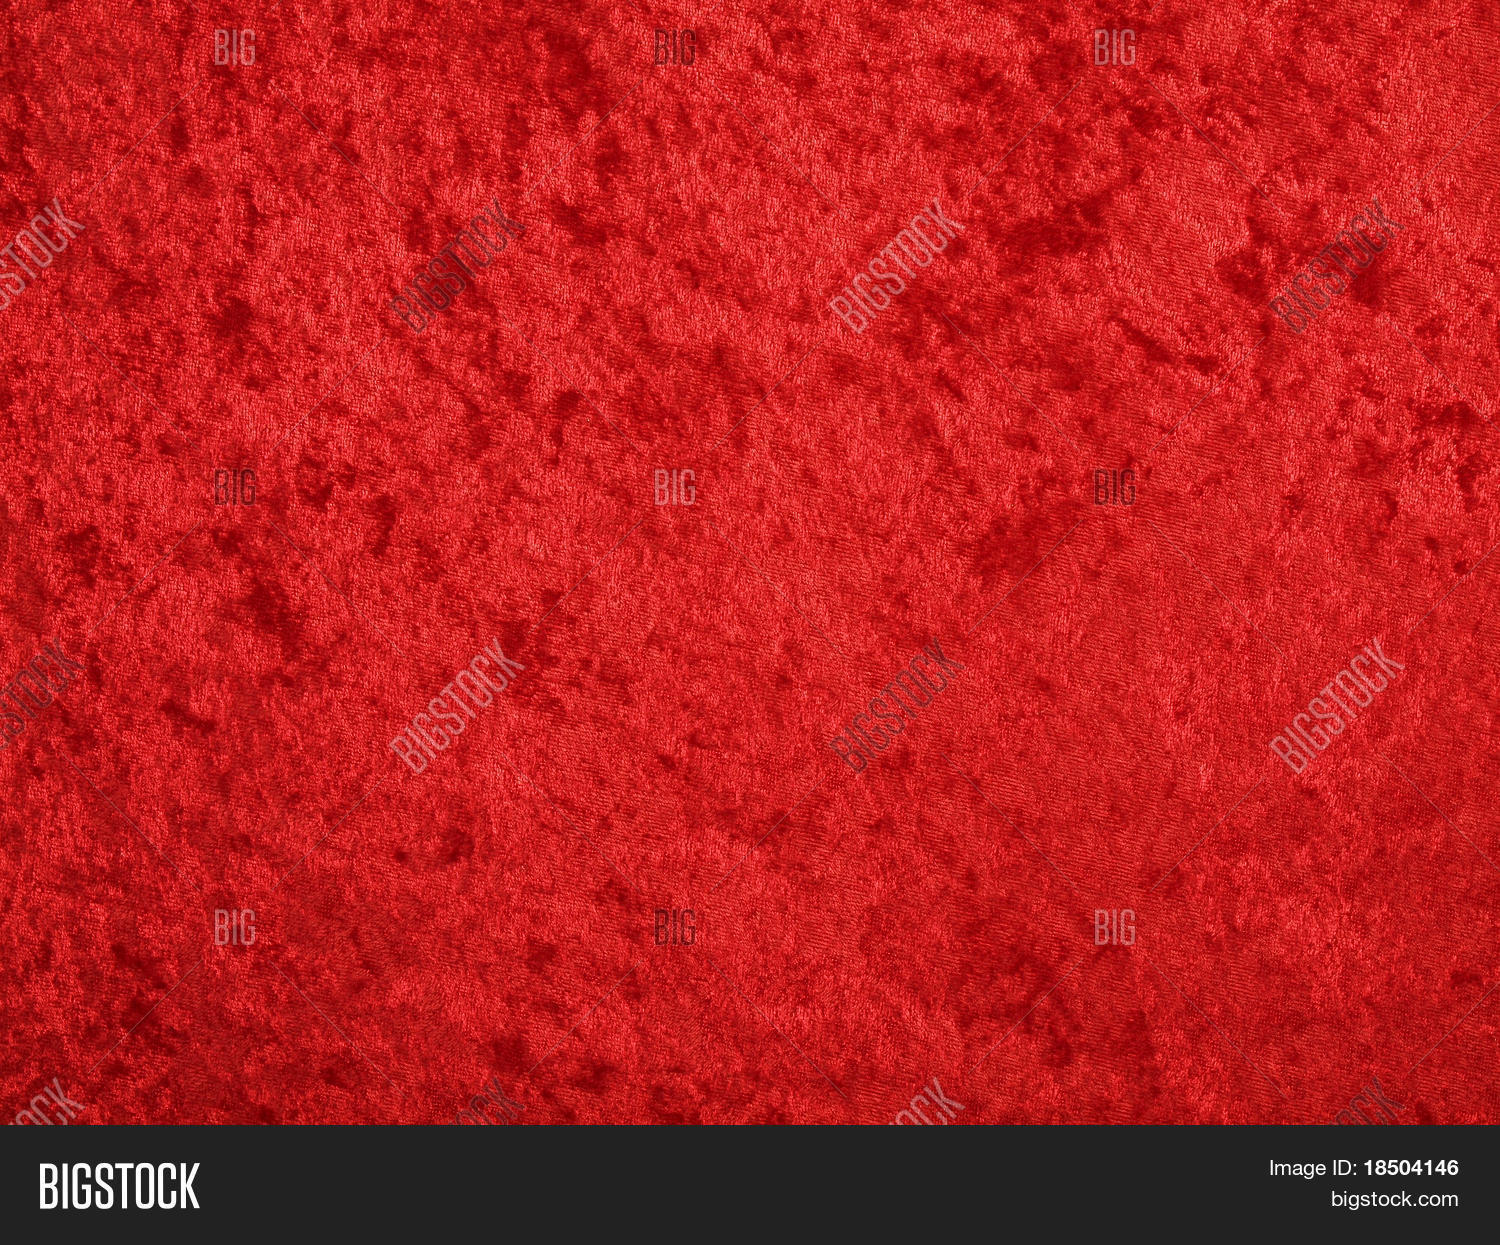 red velvet background image photo free trial bigstock red velvet background image photo